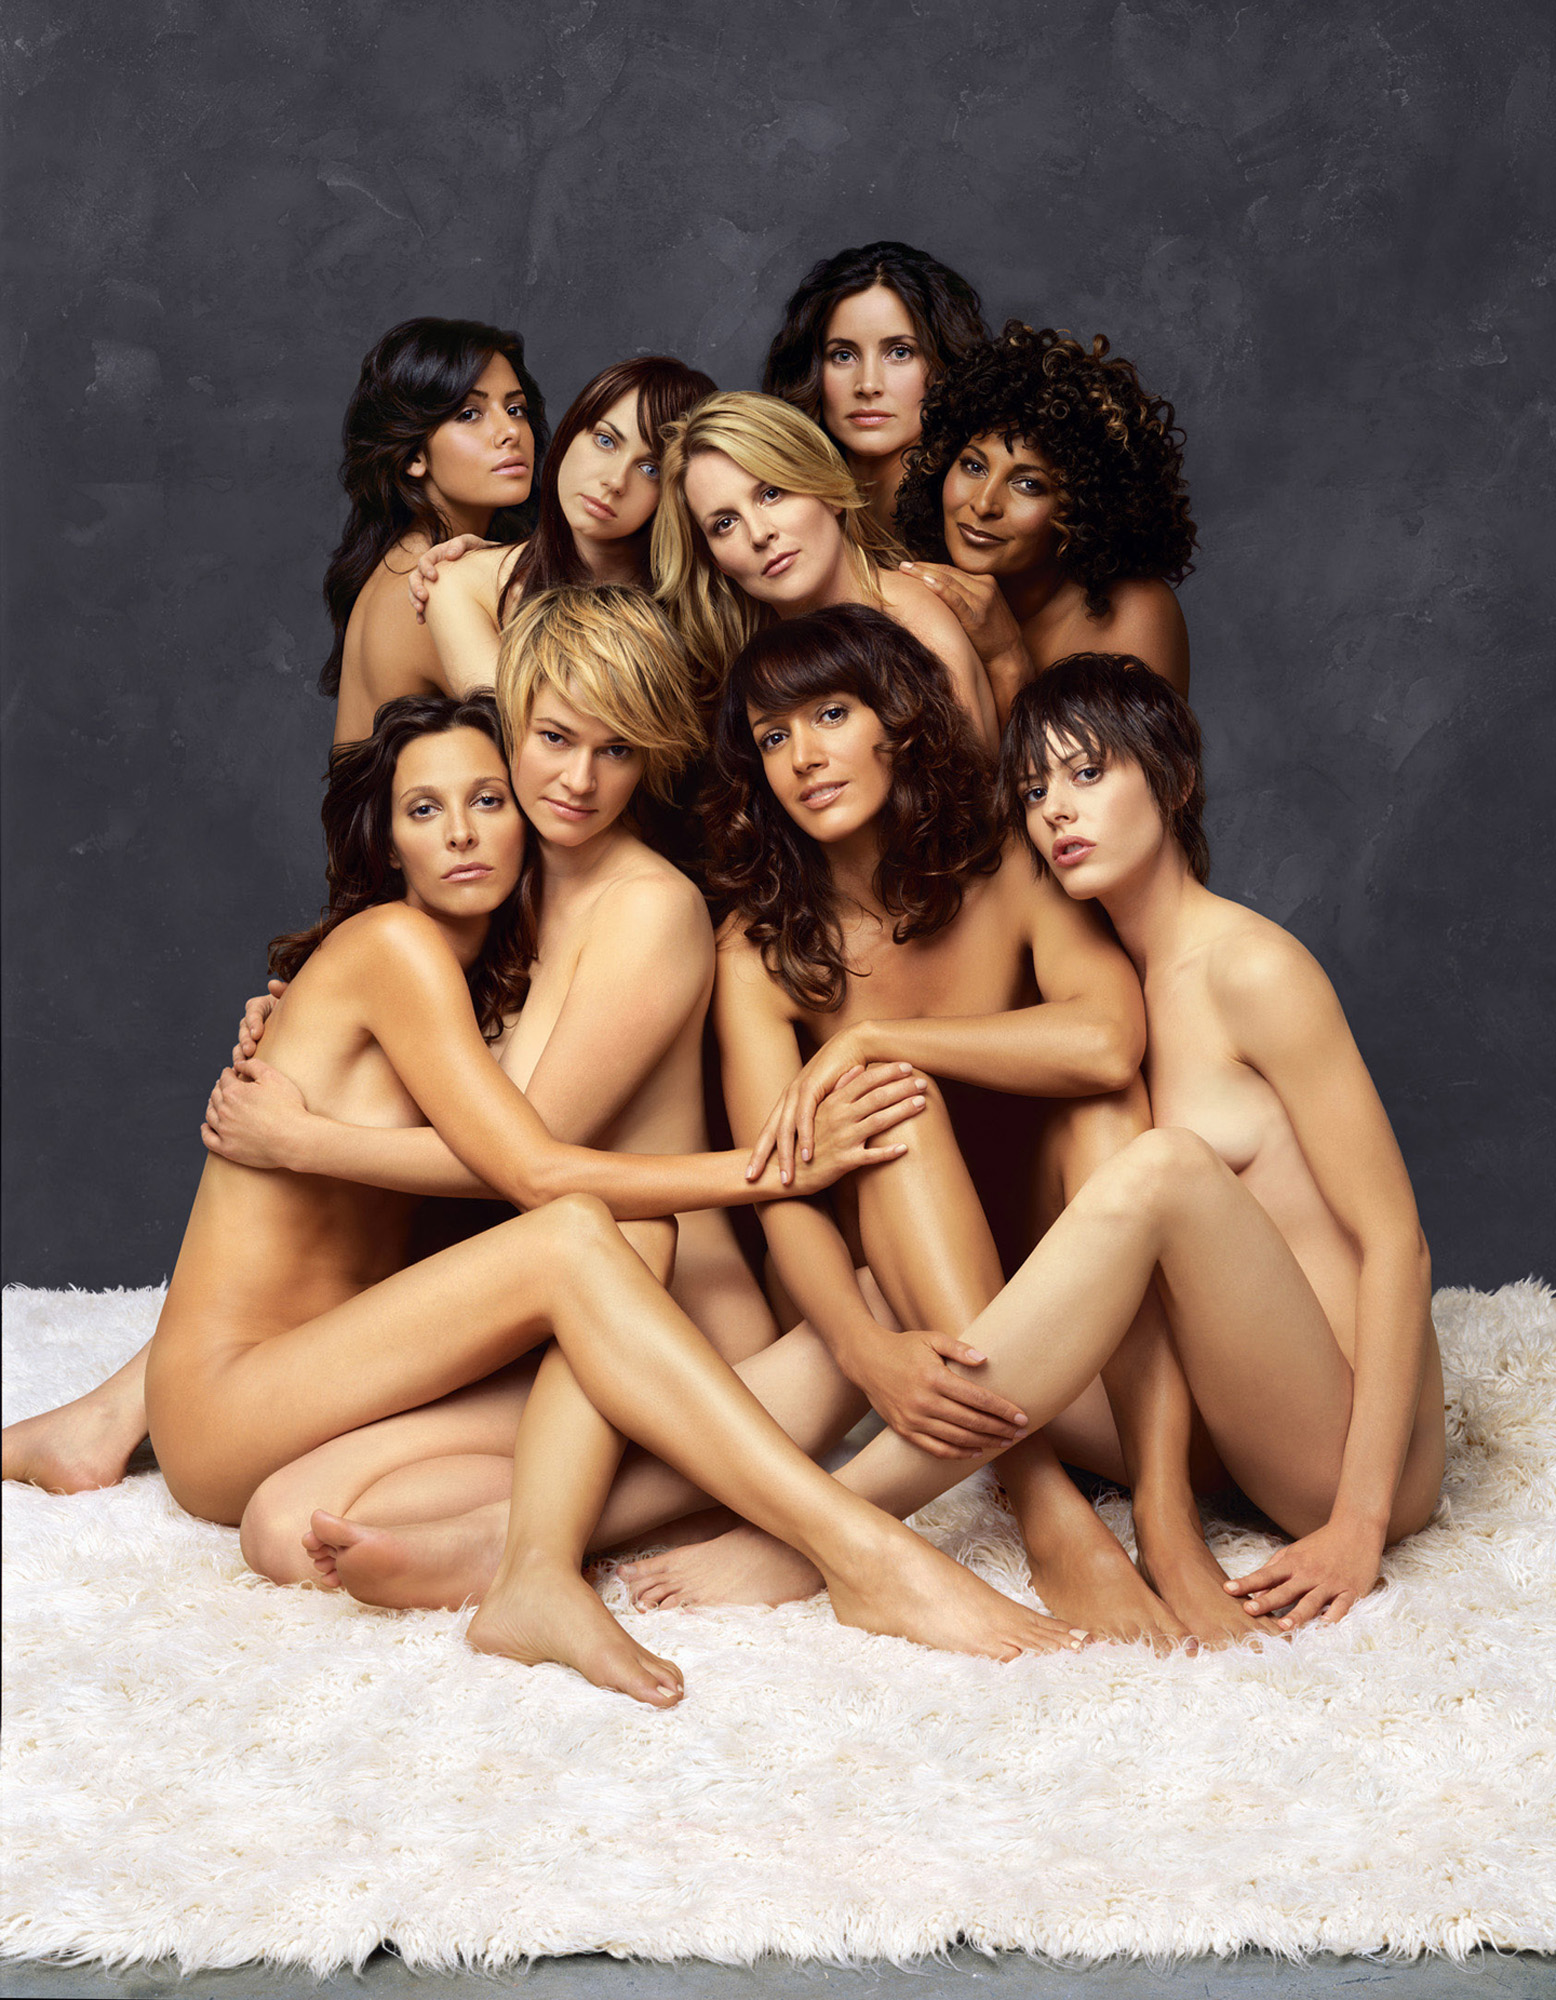 This undated photo from Showtime, shows cast members from the television series  The L Word.  Pictured in the top row, left to right, are Sarah Shahi, Mia Kirshner, Laurel Holloman, Rachel Shelley and Pam Grier. In the bottom row, left to right, are Erin Daniels, Leisha Hailey, Jennifer Beals and Katherine Moennig.